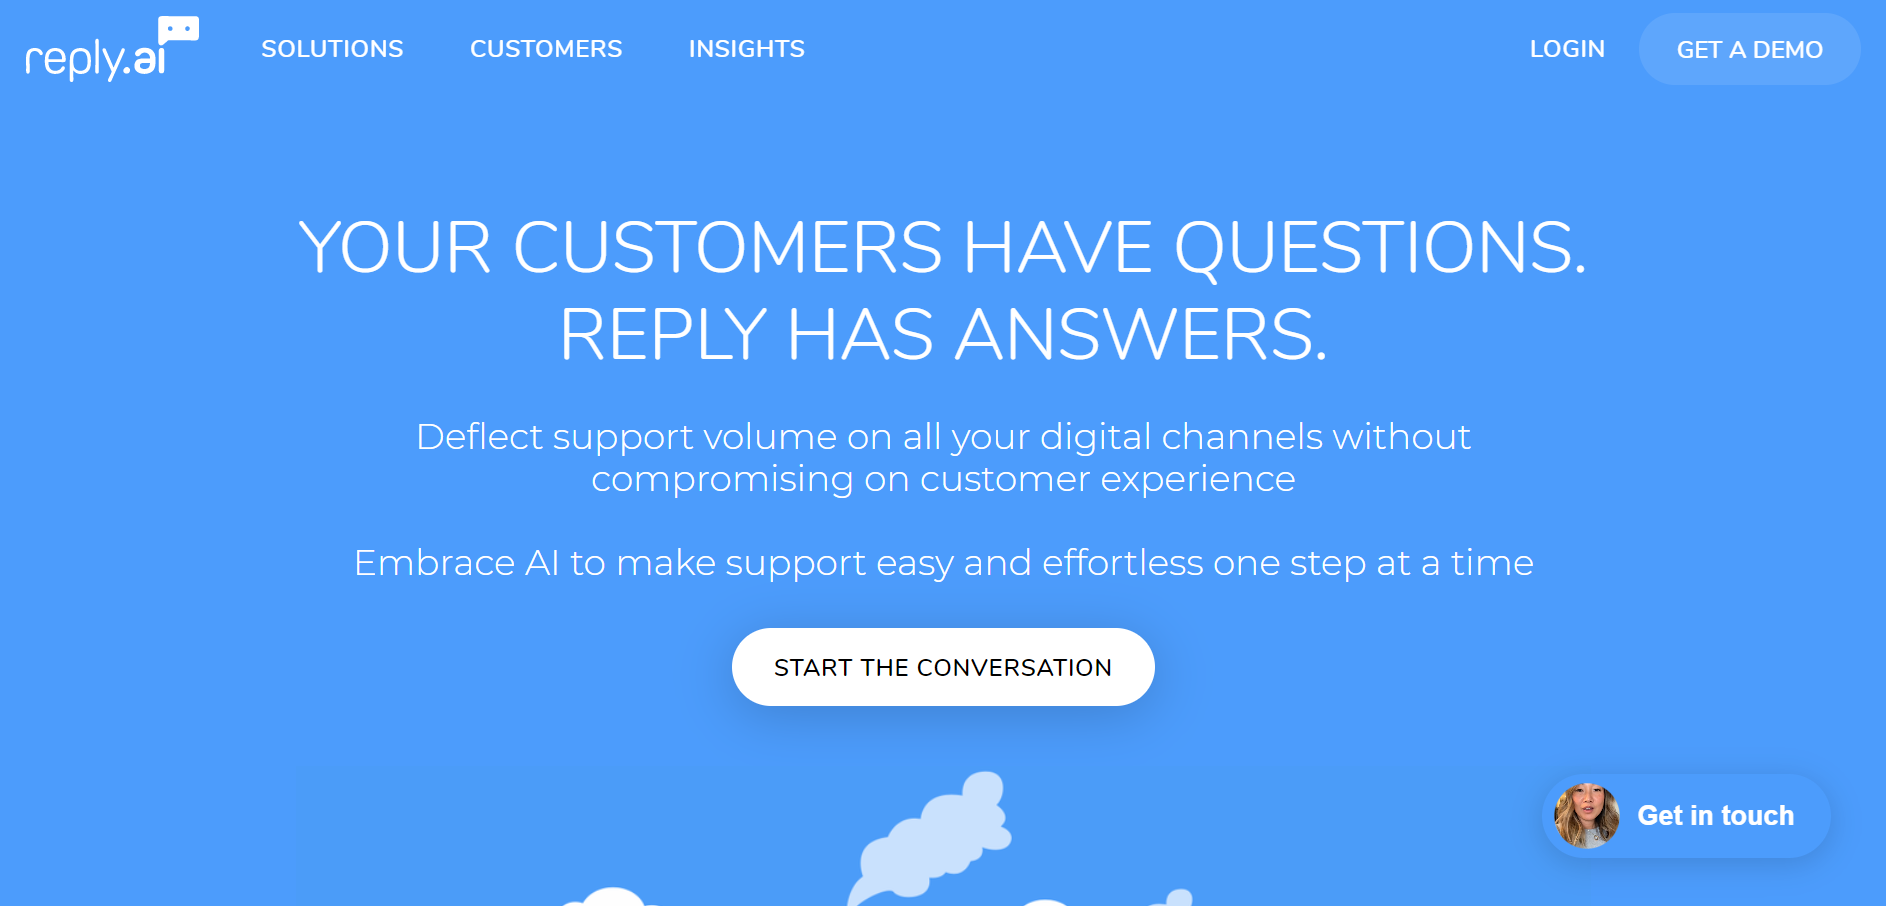 best ecommerce chatbot tools - Reply.ai